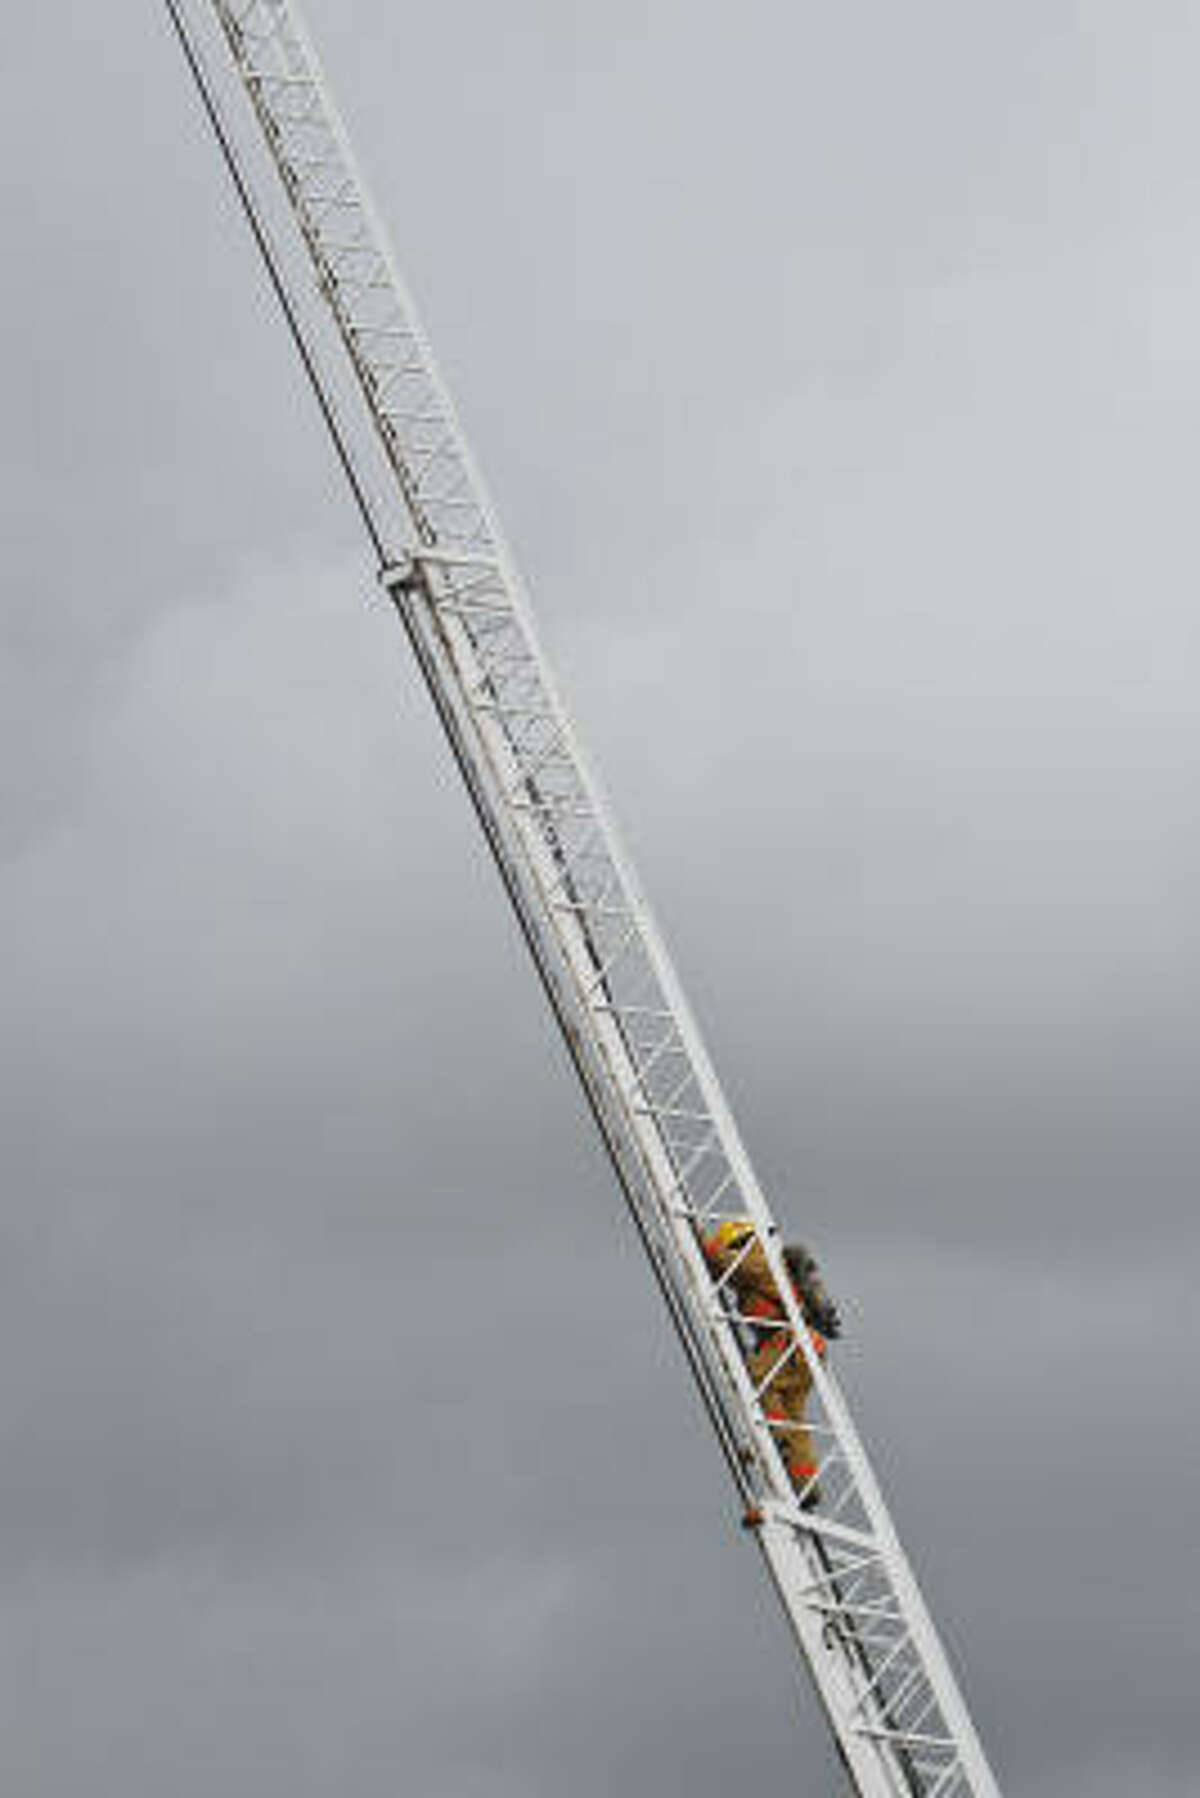 Camilo Bello climbs up an 80-foot ladder during a firefighting exercise.